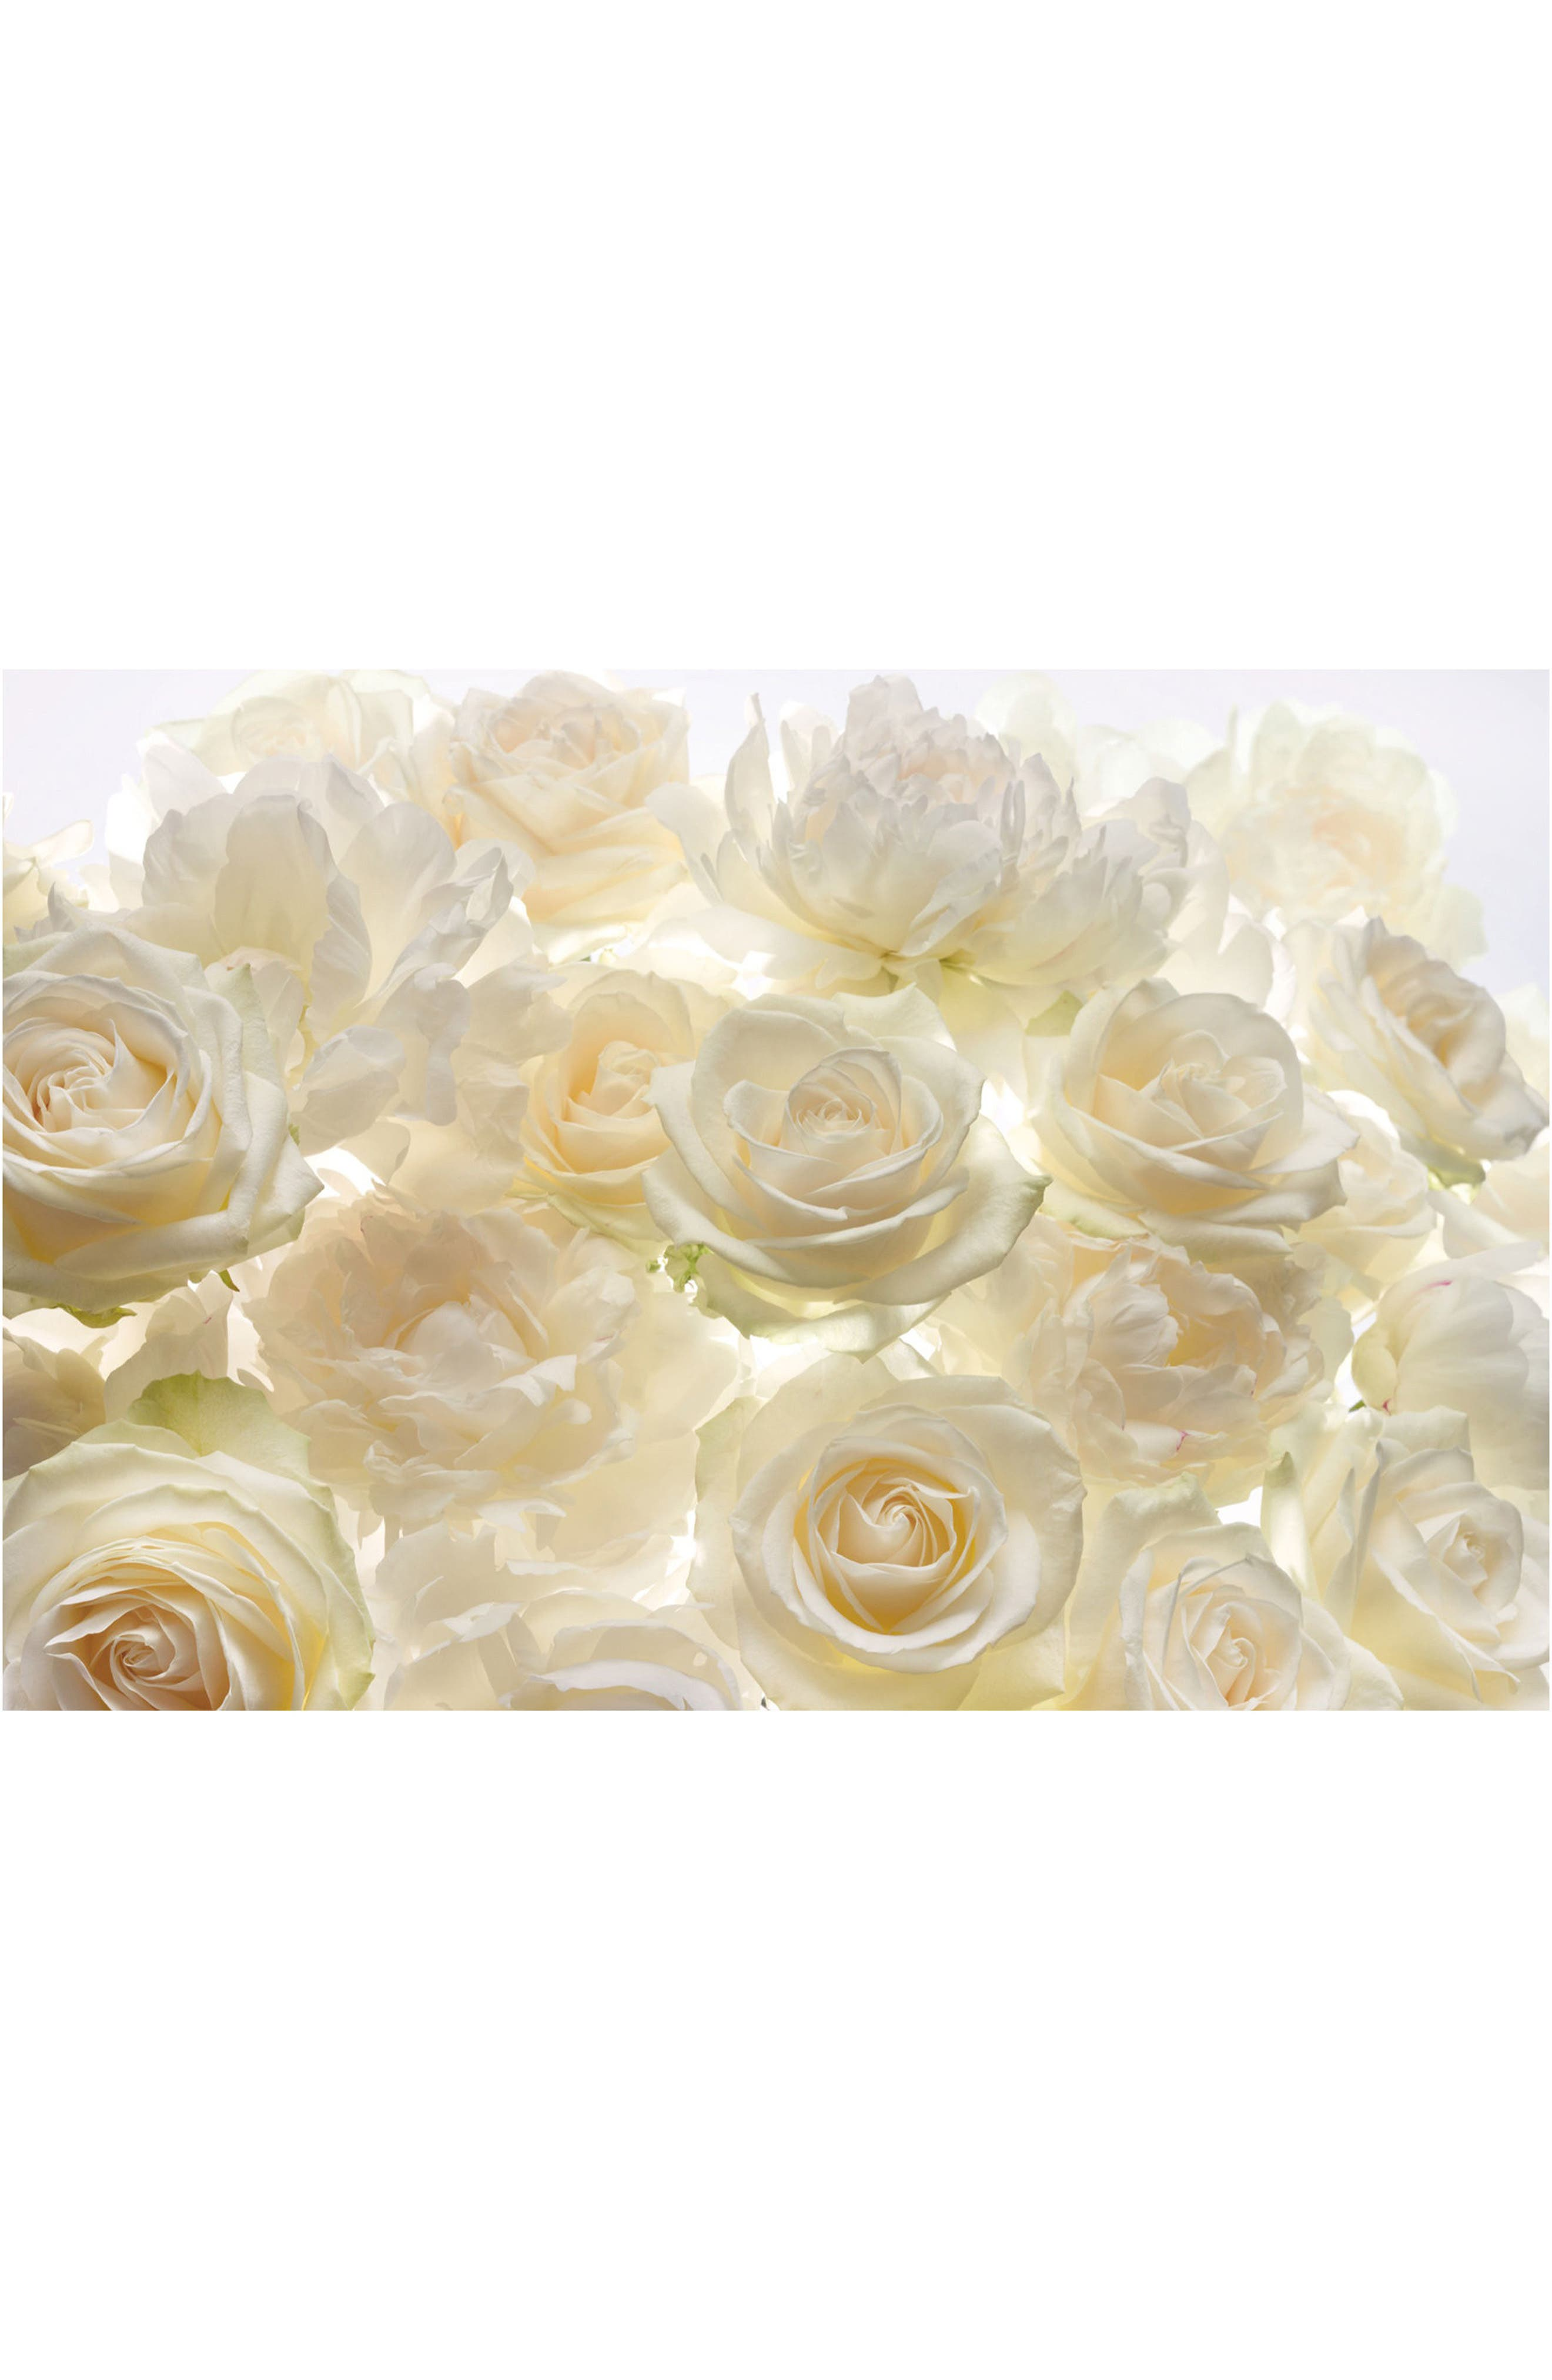 Alternate Image 1 Selected - Wallpops Ivory Rose Wall Mural